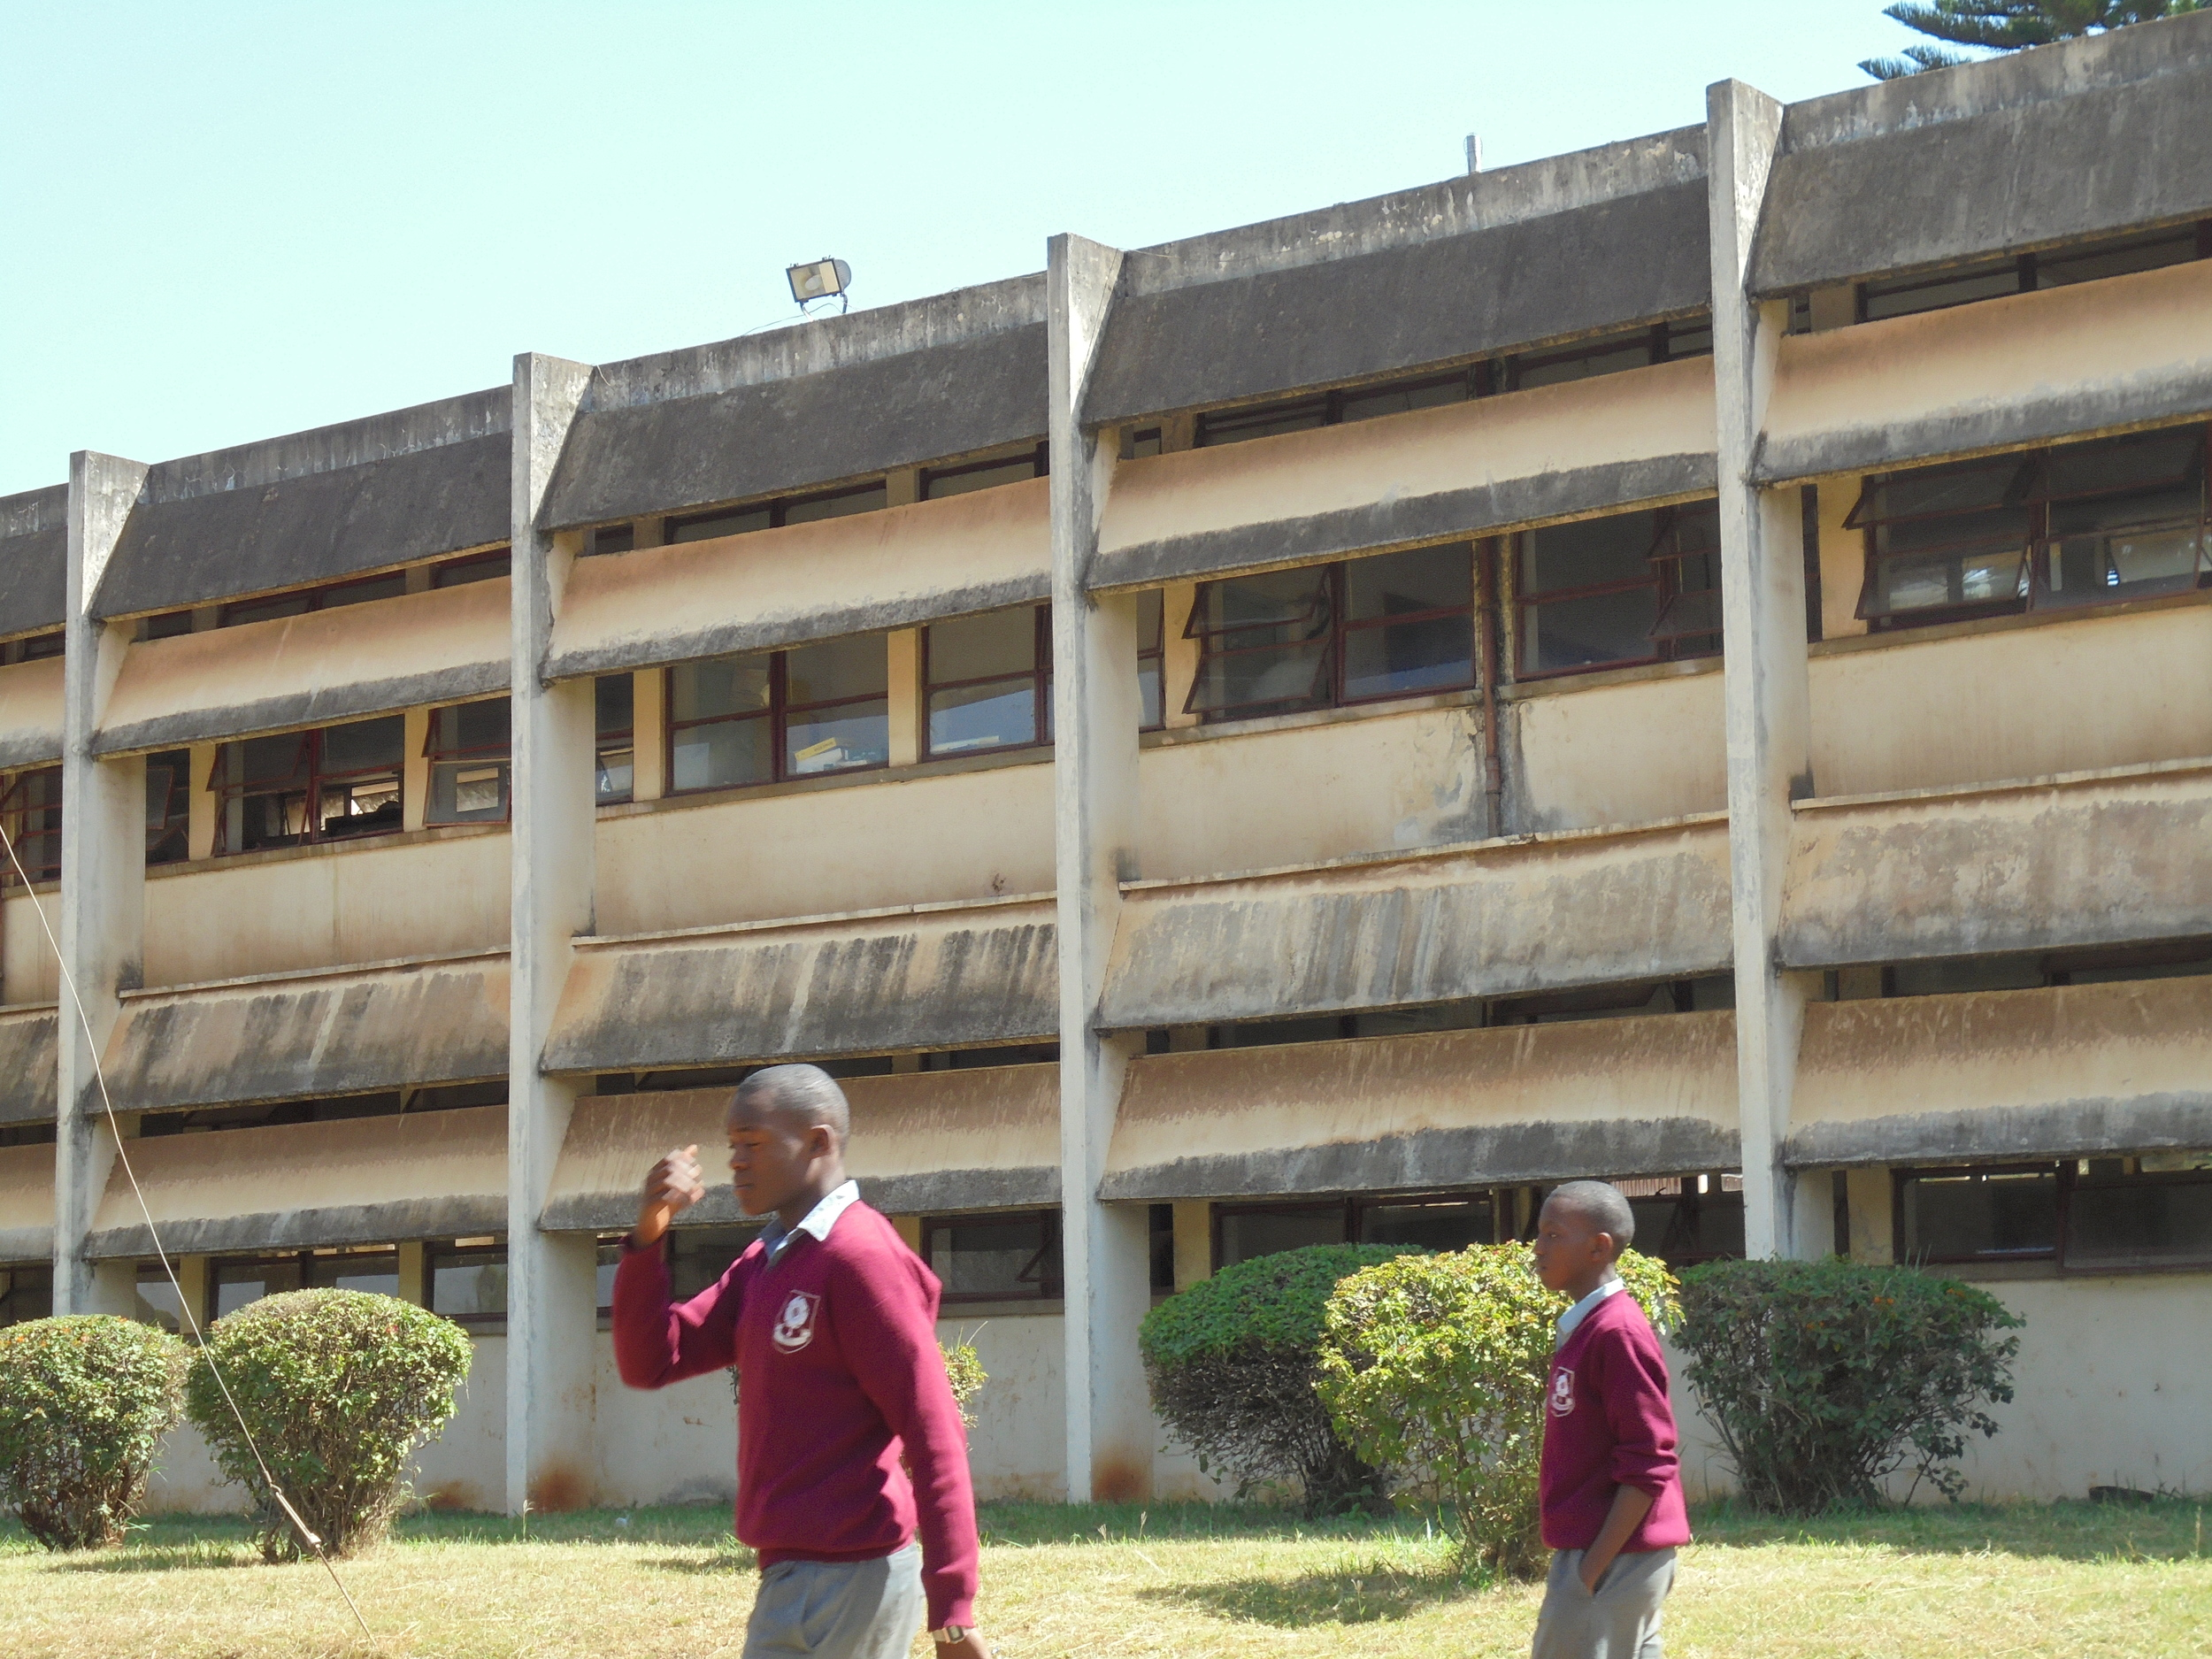 The whole school and all the Houses need redecorating. The windows and roof of the main tuition block have, however, been repaired this last year.